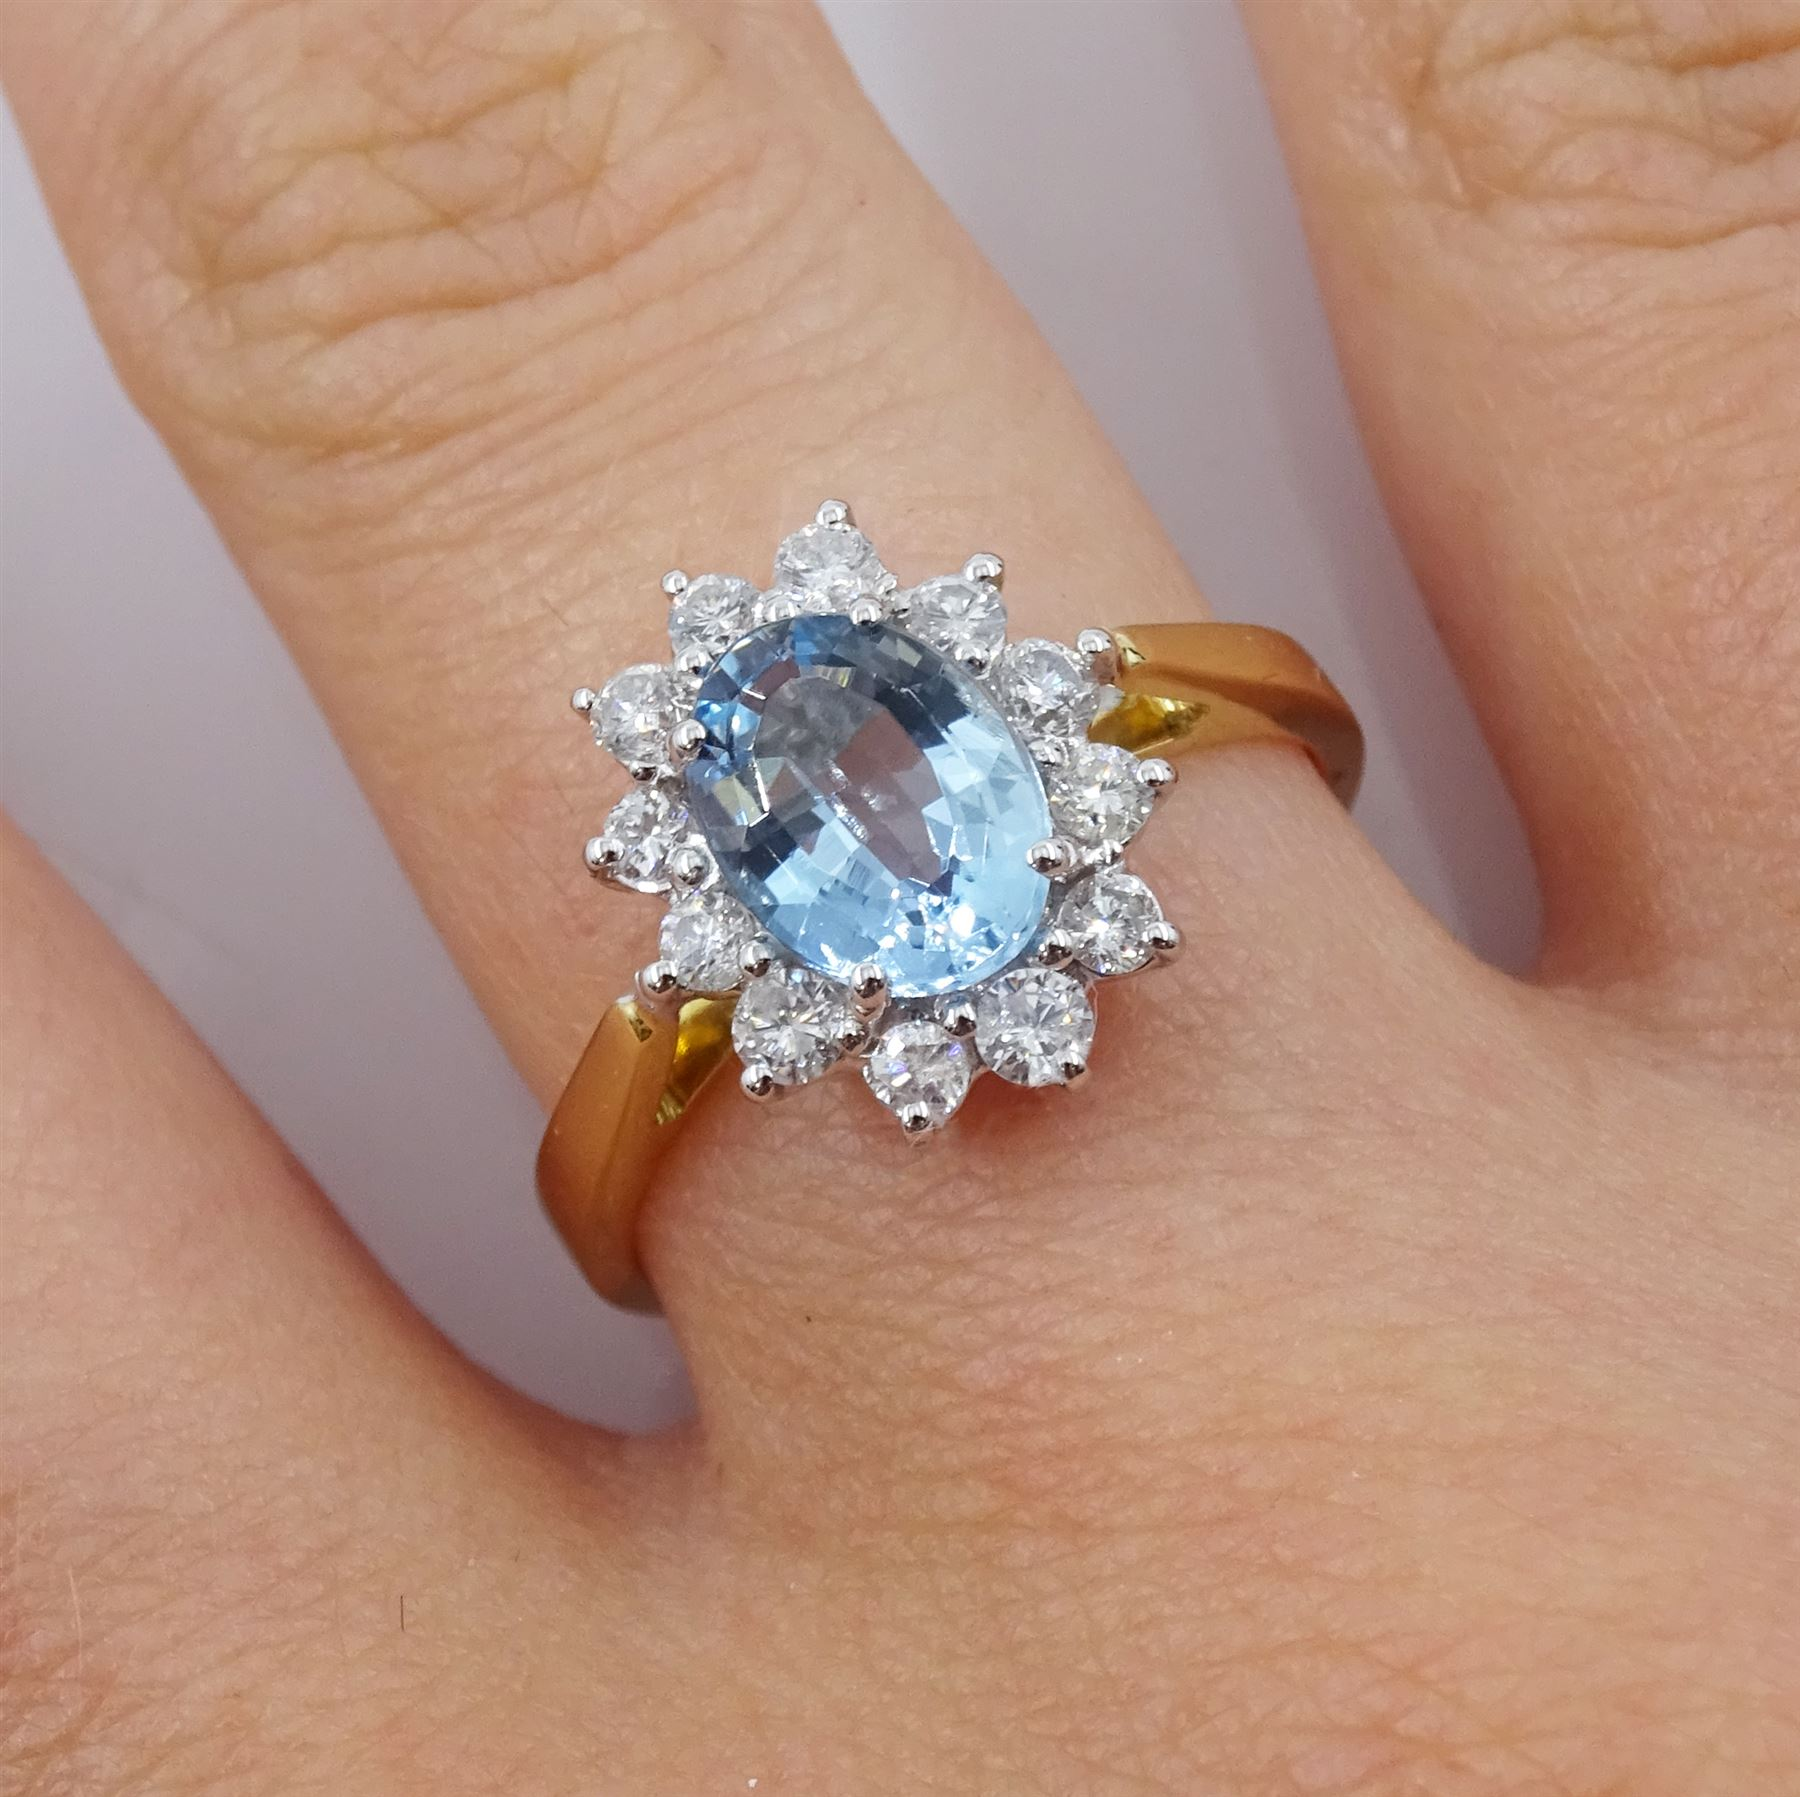 18ct gold oval aquamarine and round brilliant cut diamond cluster ring - Image 2 of 4